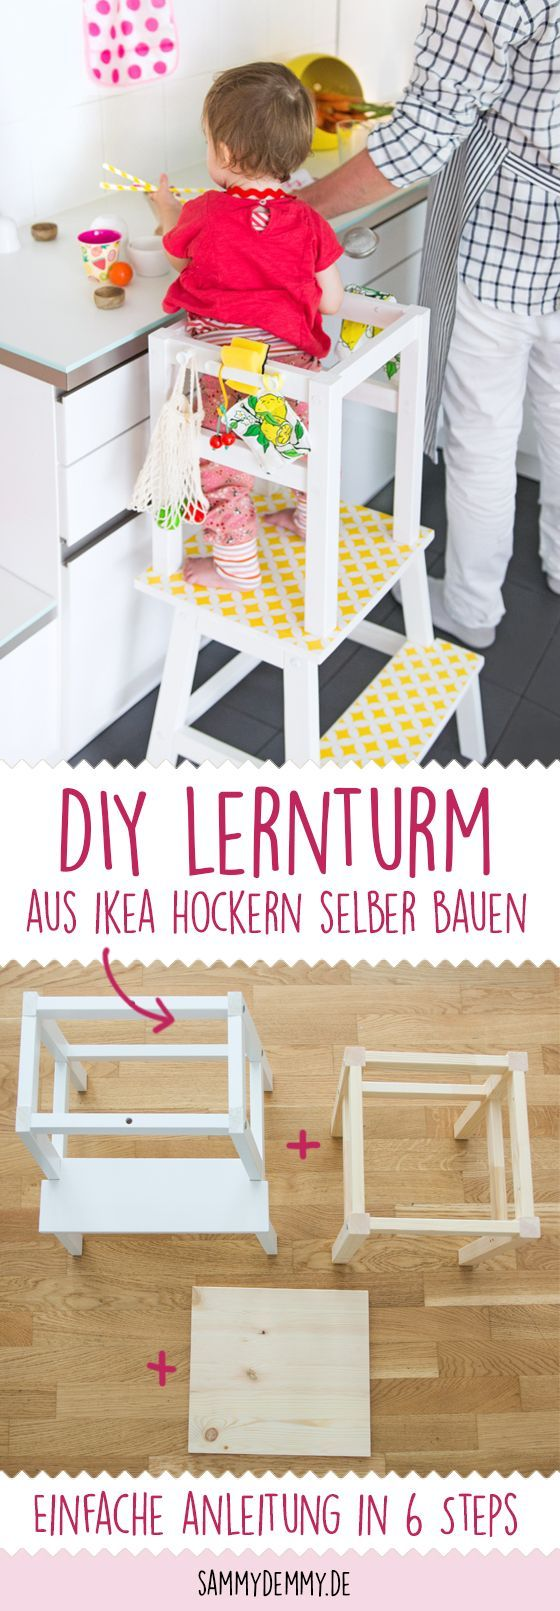 die besten 25 wiege ideen auf pinterest stubenwagen baby wiege bett und moderne kinderwagen. Black Bedroom Furniture Sets. Home Design Ideas